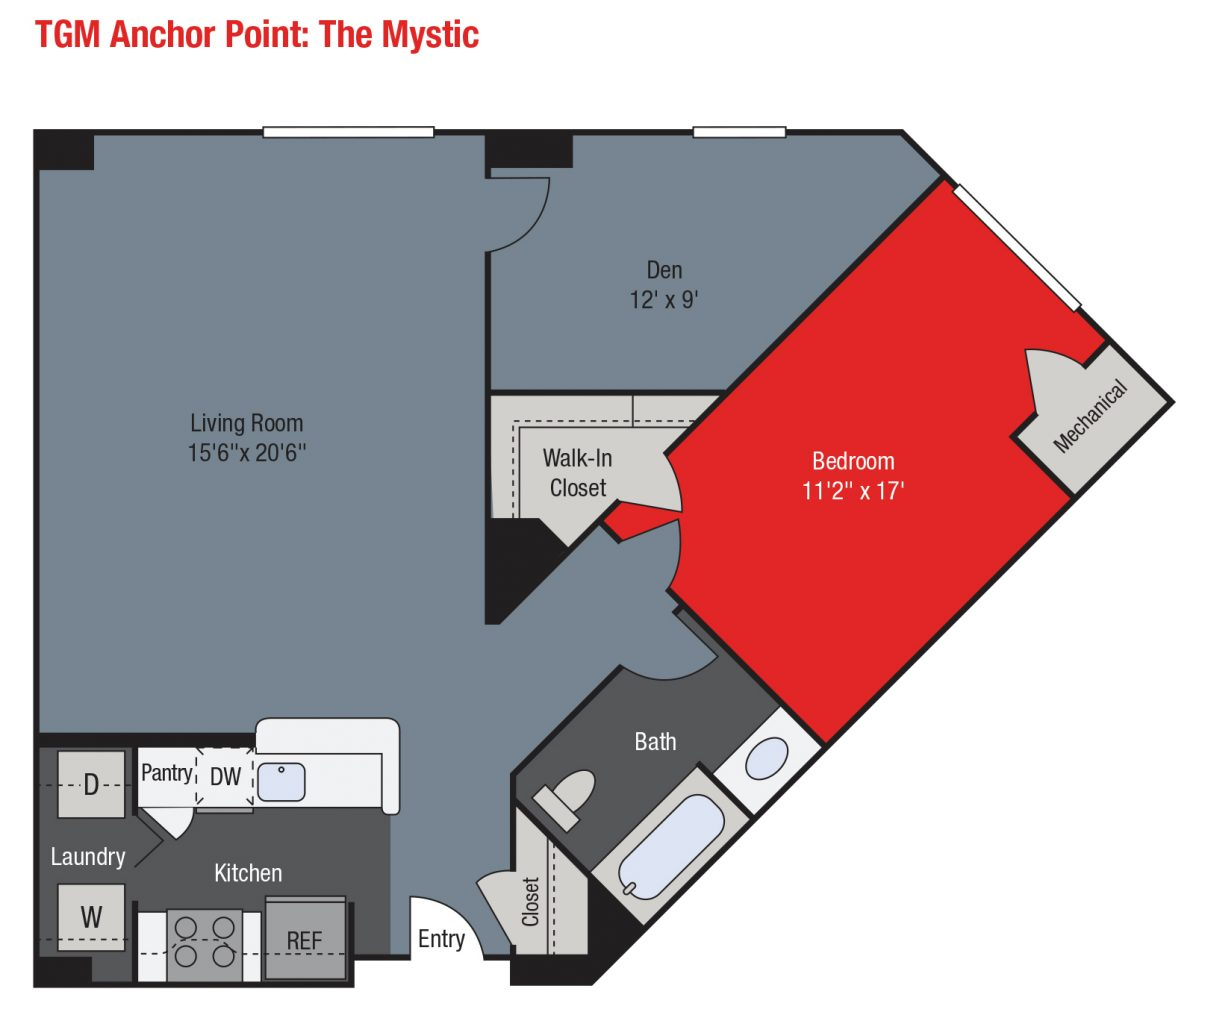 Apartments For Rent TGM Anchor Point - Mystic